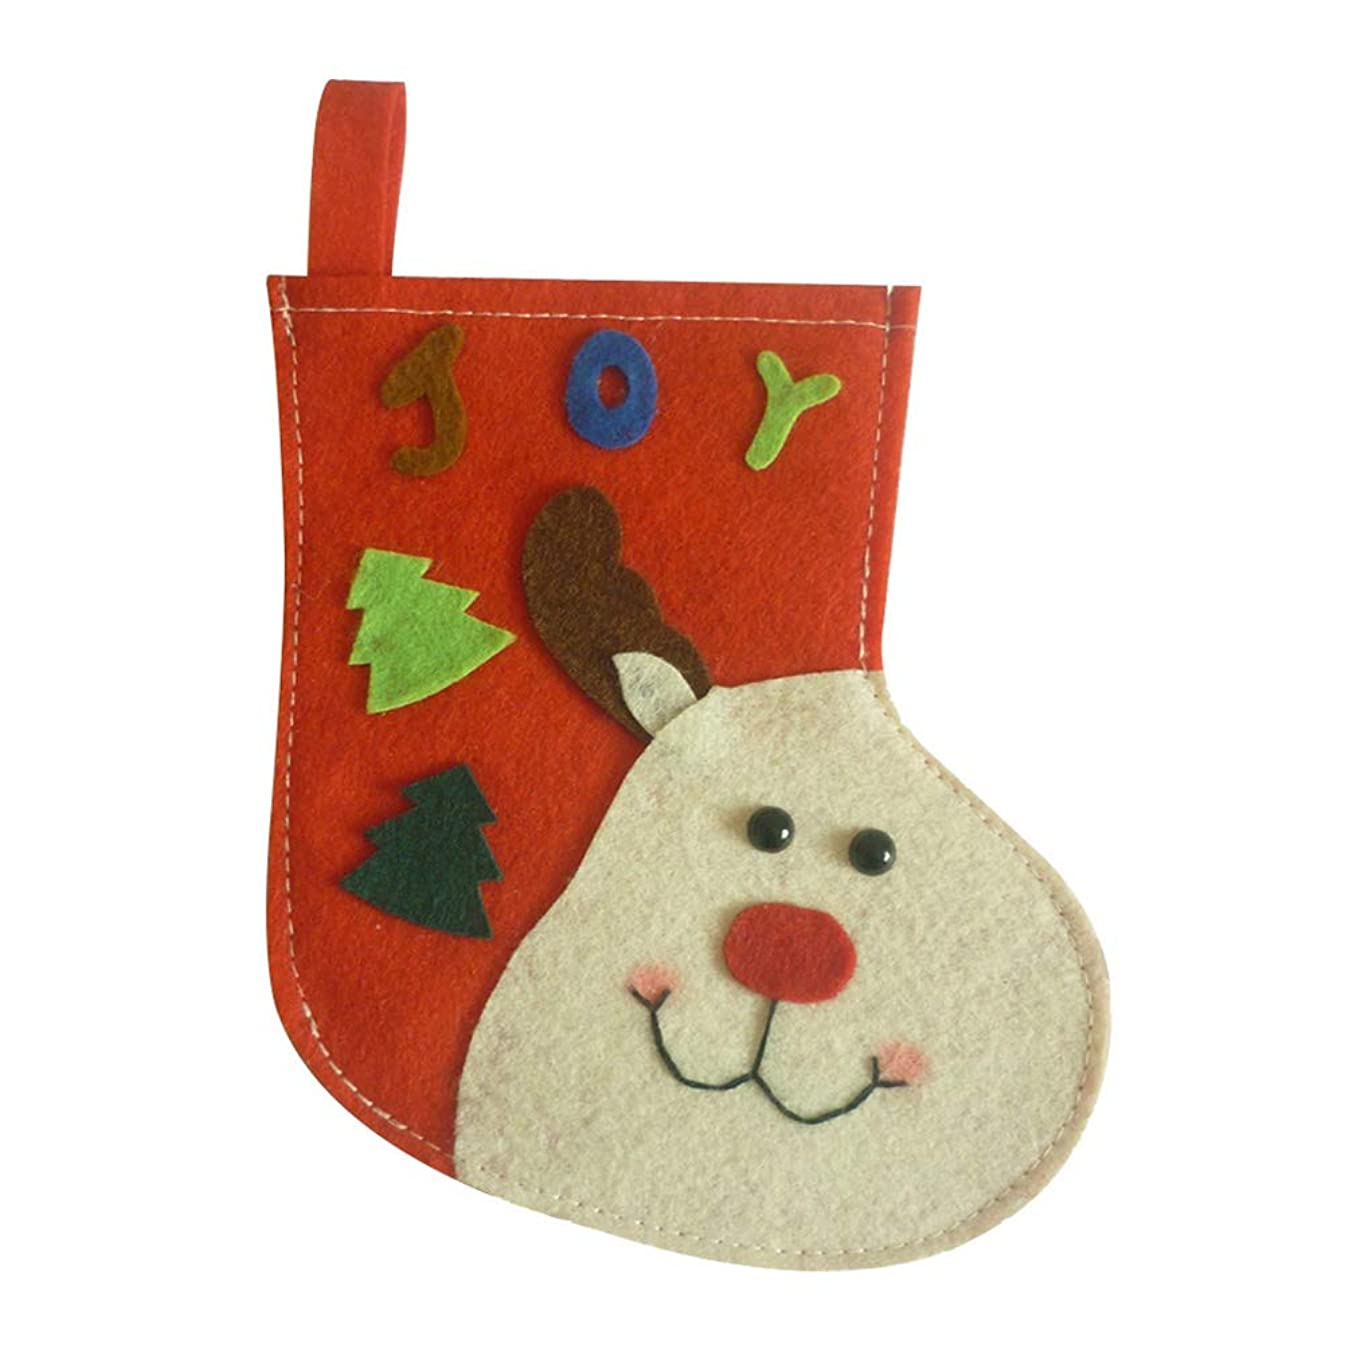 Narutosak Christmas Stockings, Lovely Santa Claus Snowman Gift Sock Candy Bag Style Tree Decoration - Red